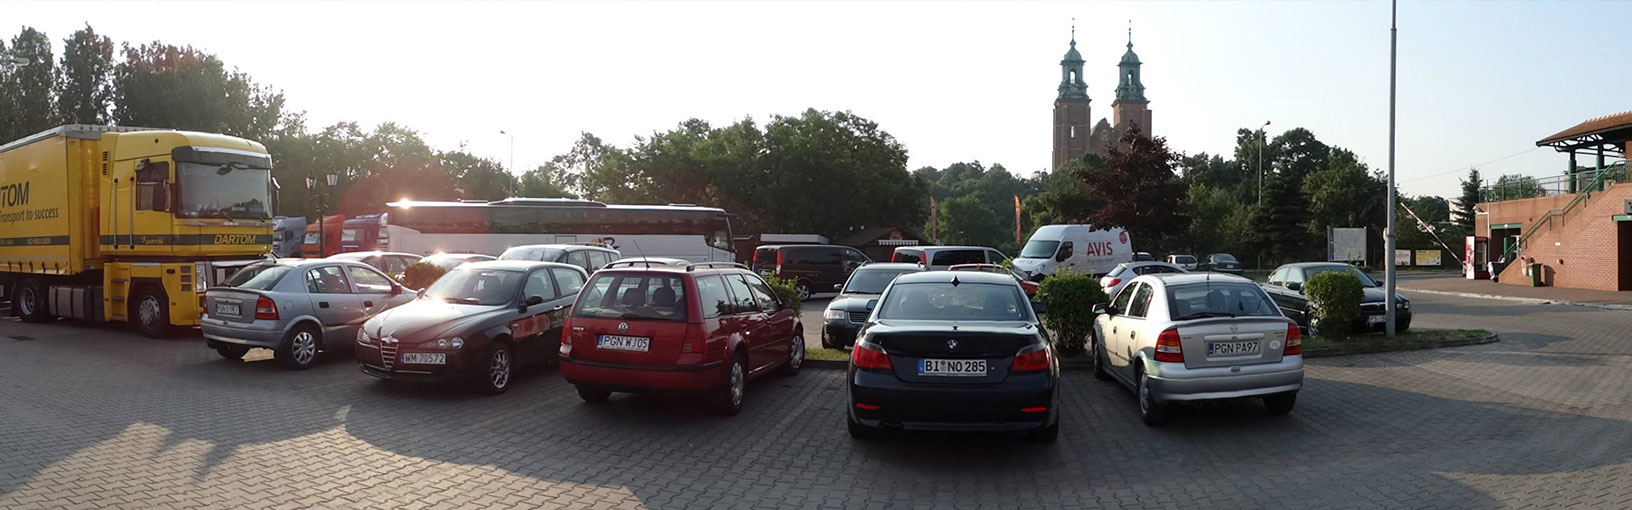 parking gniezno